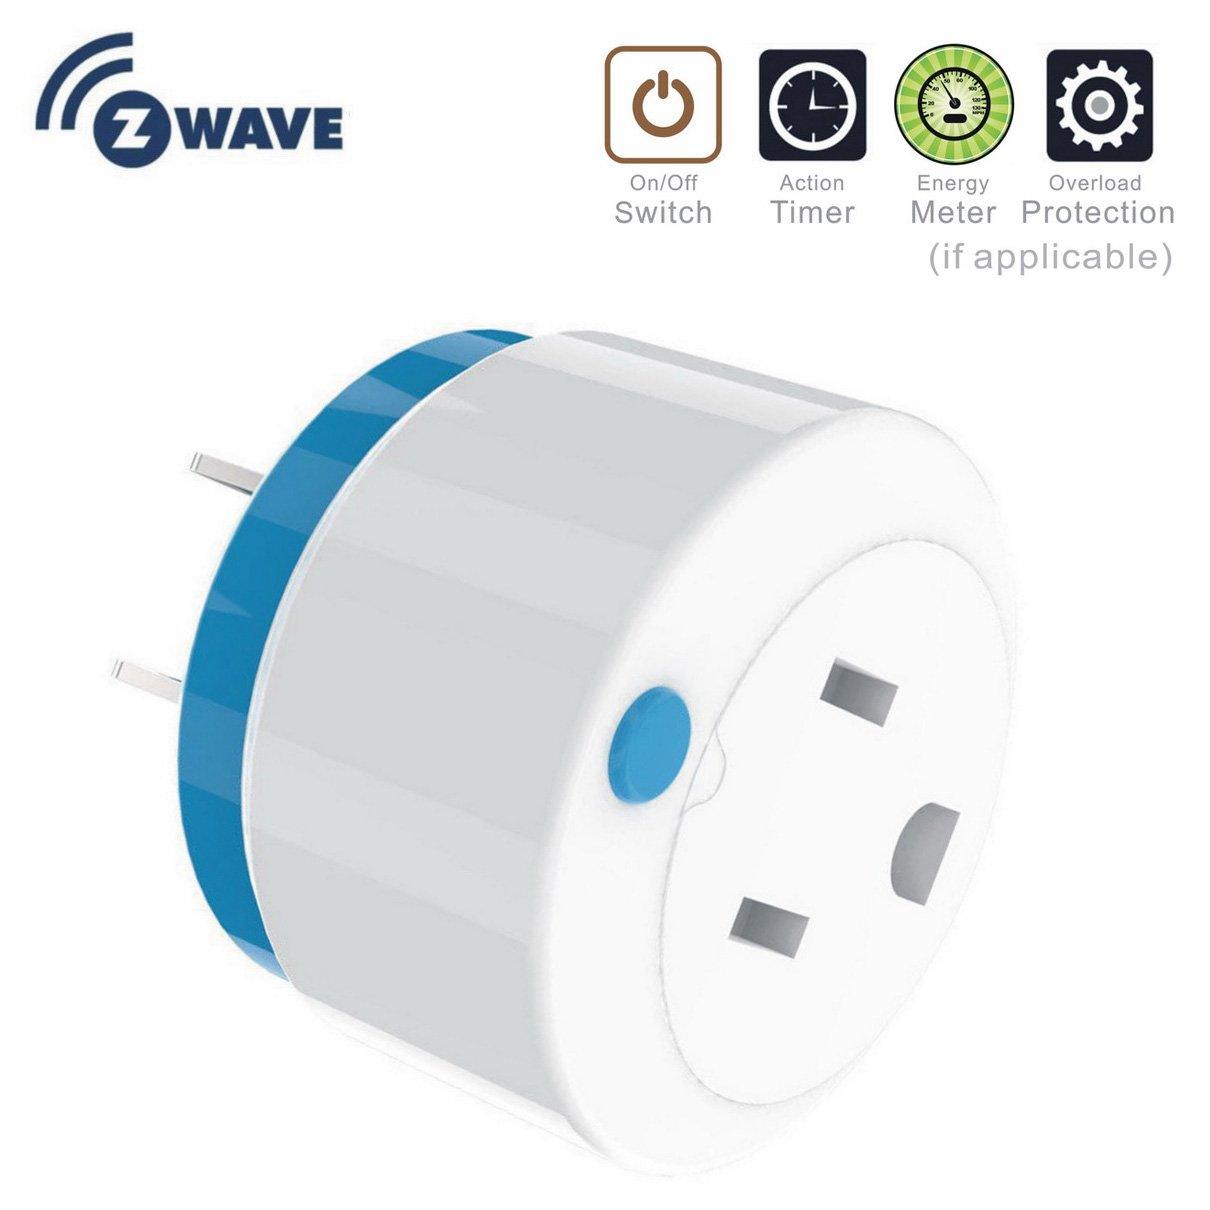 Mini ZWave Smart Plug, z Wave Power Plug Home Automation Z-Wave Socket Outlet Wireless Switch Plug Control by Smartphone Compatible with Wink, Smartthings, Vera, Zipato, Iris, Fibaro by NEO